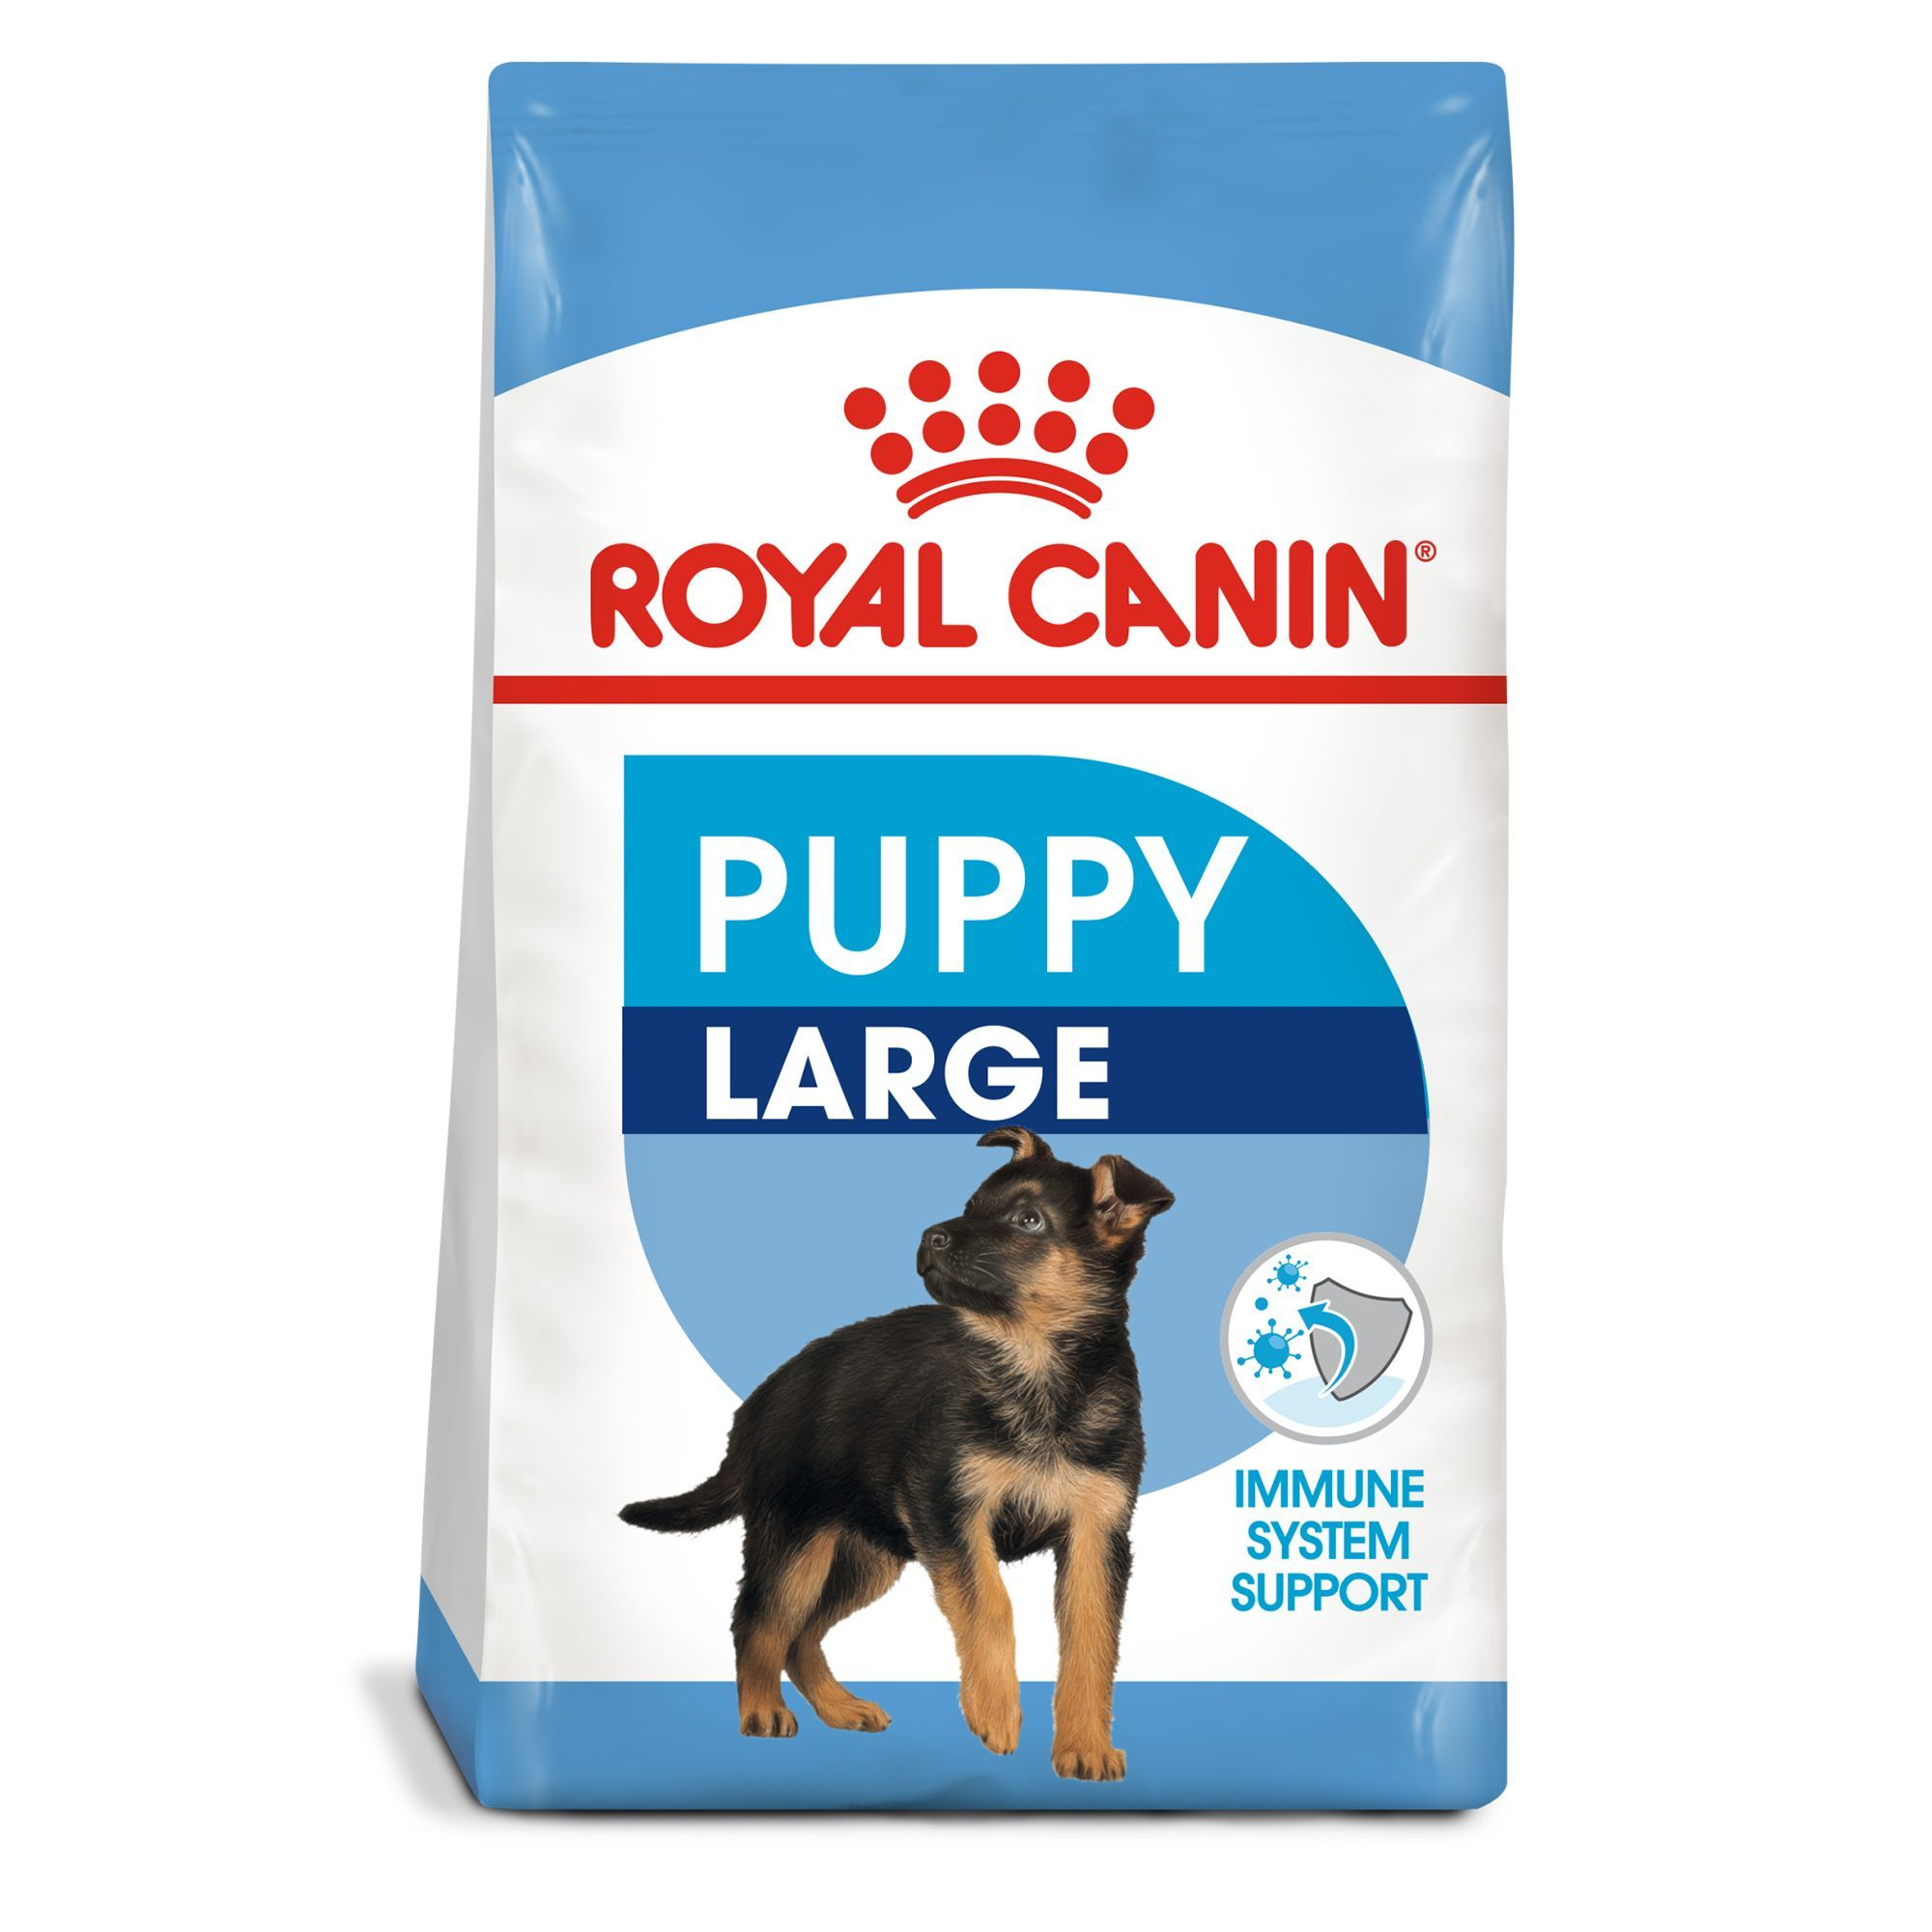 Royal Canin Size Health Nutrition Large Puppy Food Size 35 Lb